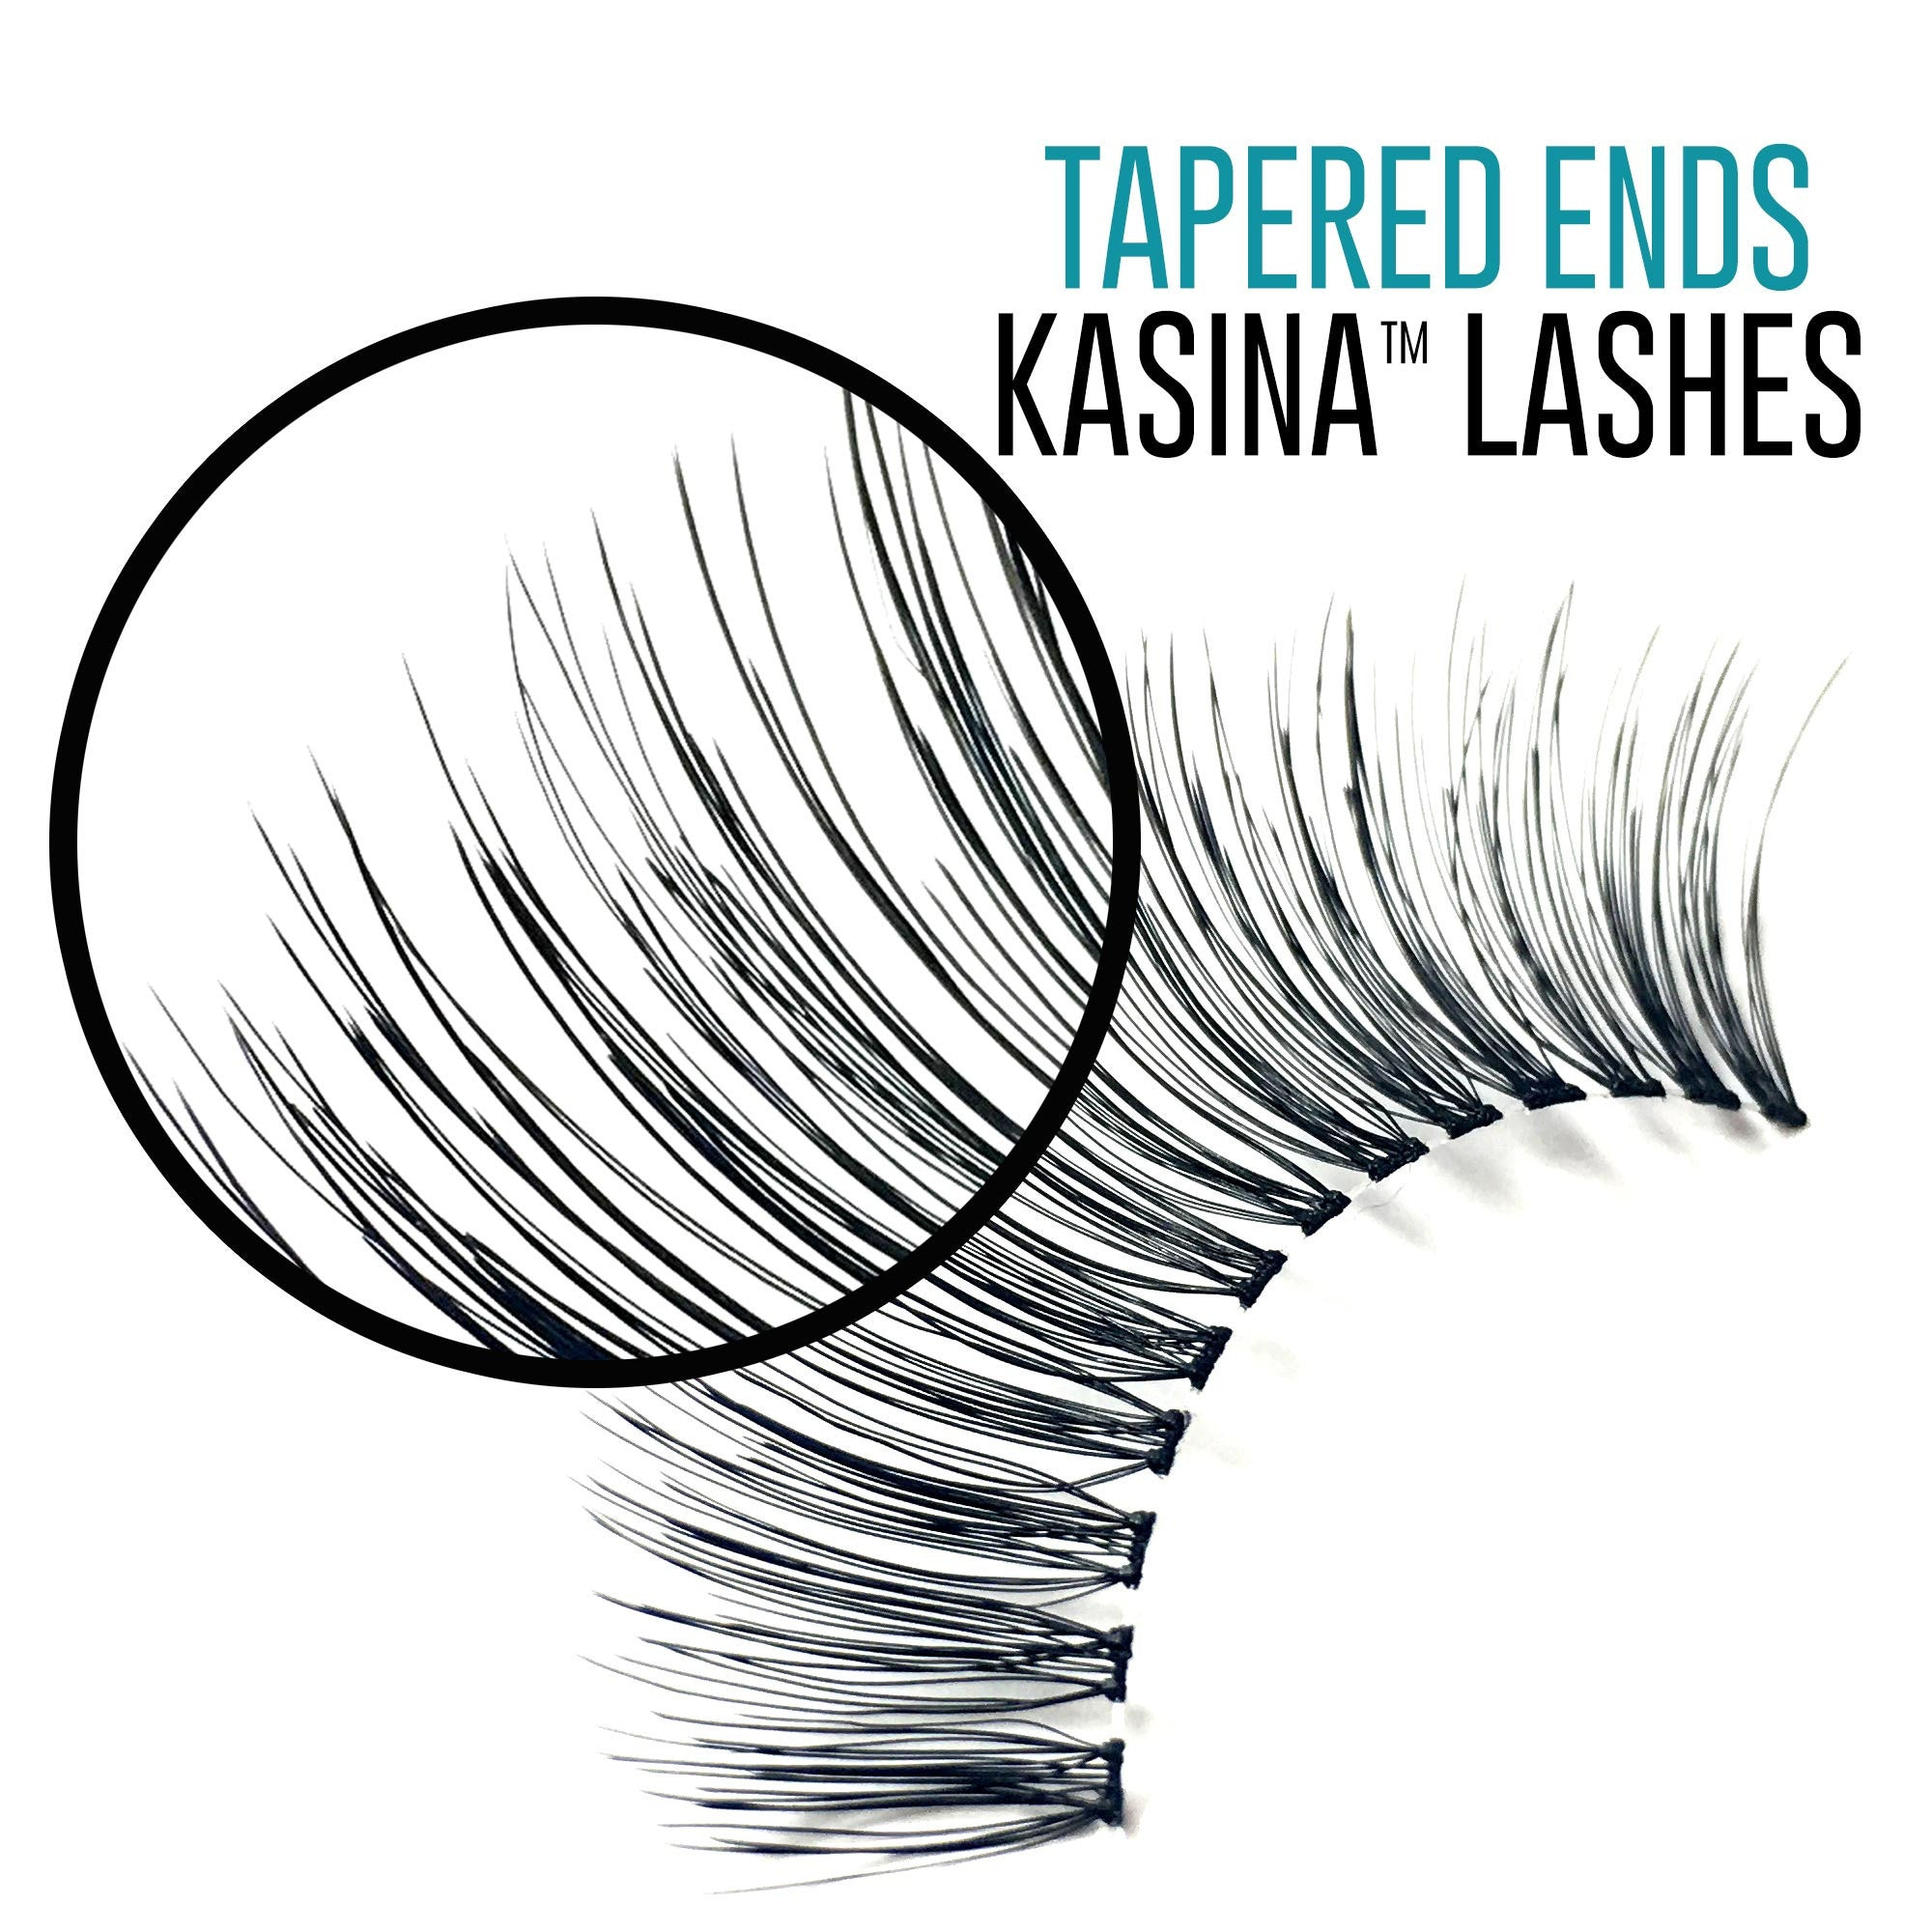 Individual Lashes - Pro #KFDM, Knot Free Double Flare Medium - Recommended by Professional Makeup Artists.